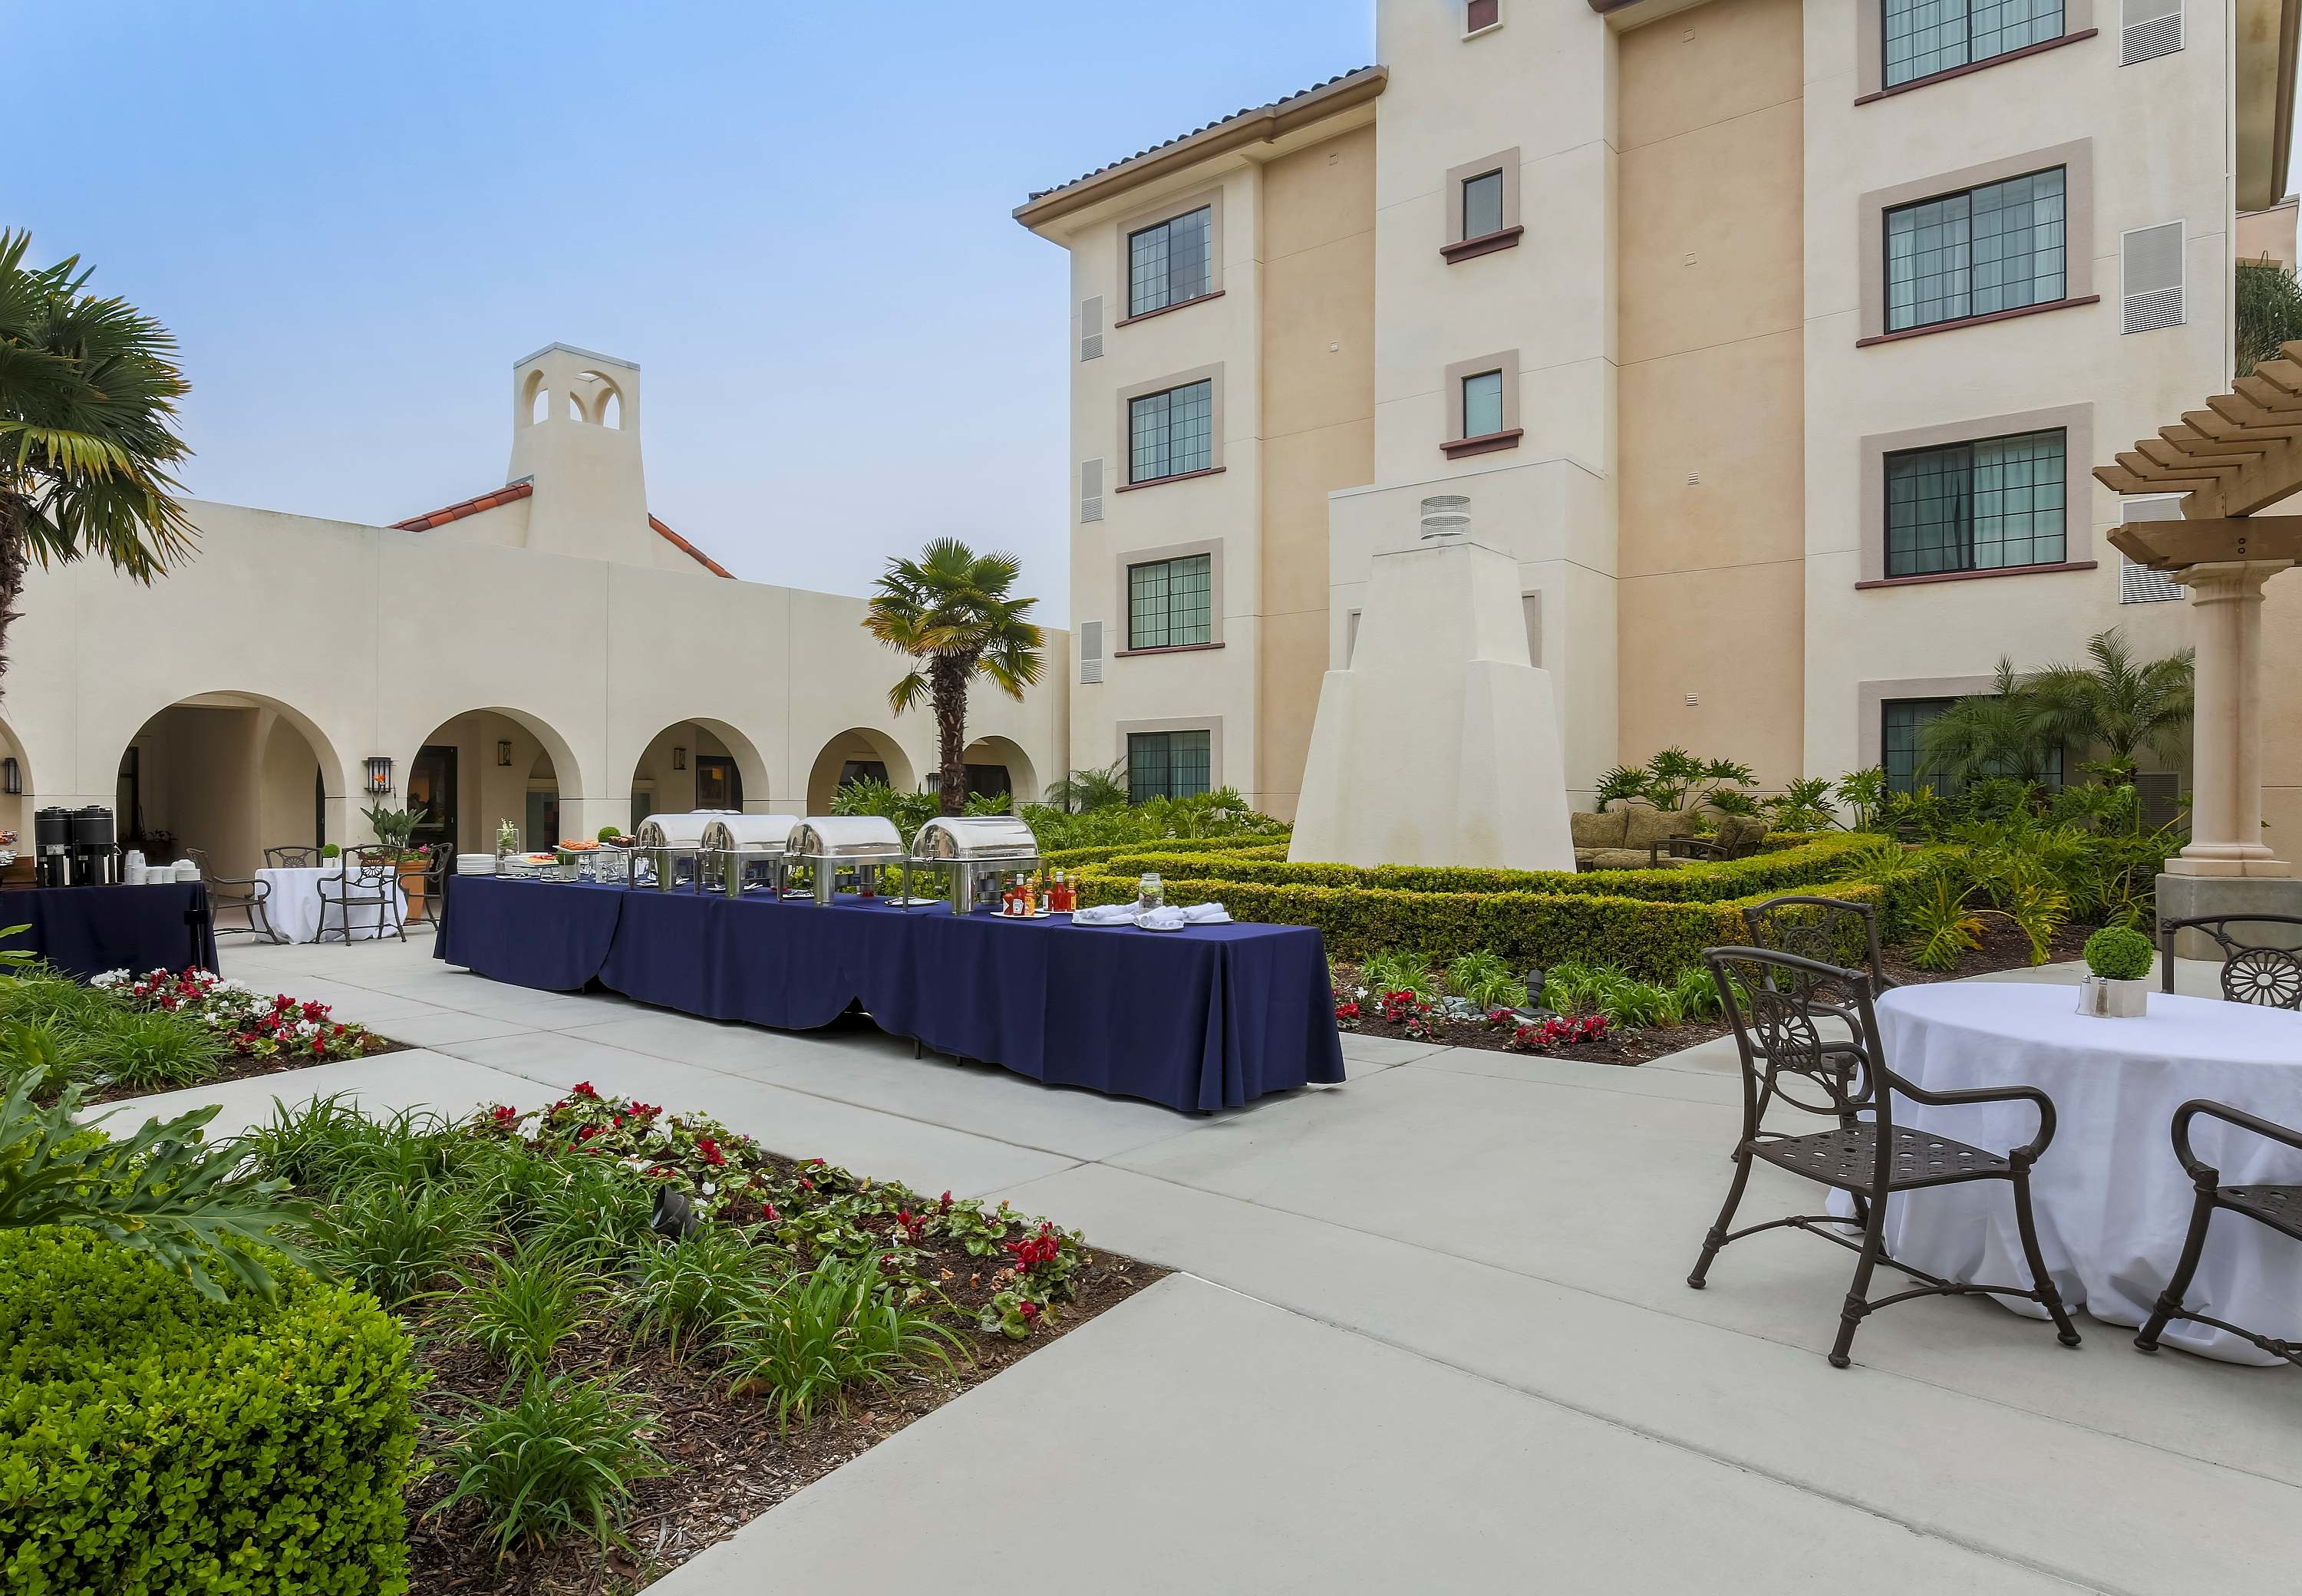 Courtyard by Marriott San Diego Airport/Liberty Station image 18